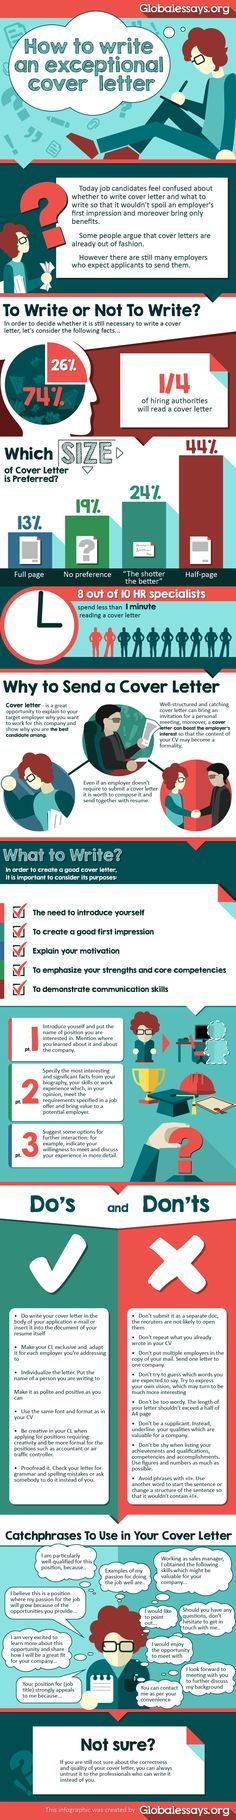 Contents That Make A Cv Stand Out  Resume Writing